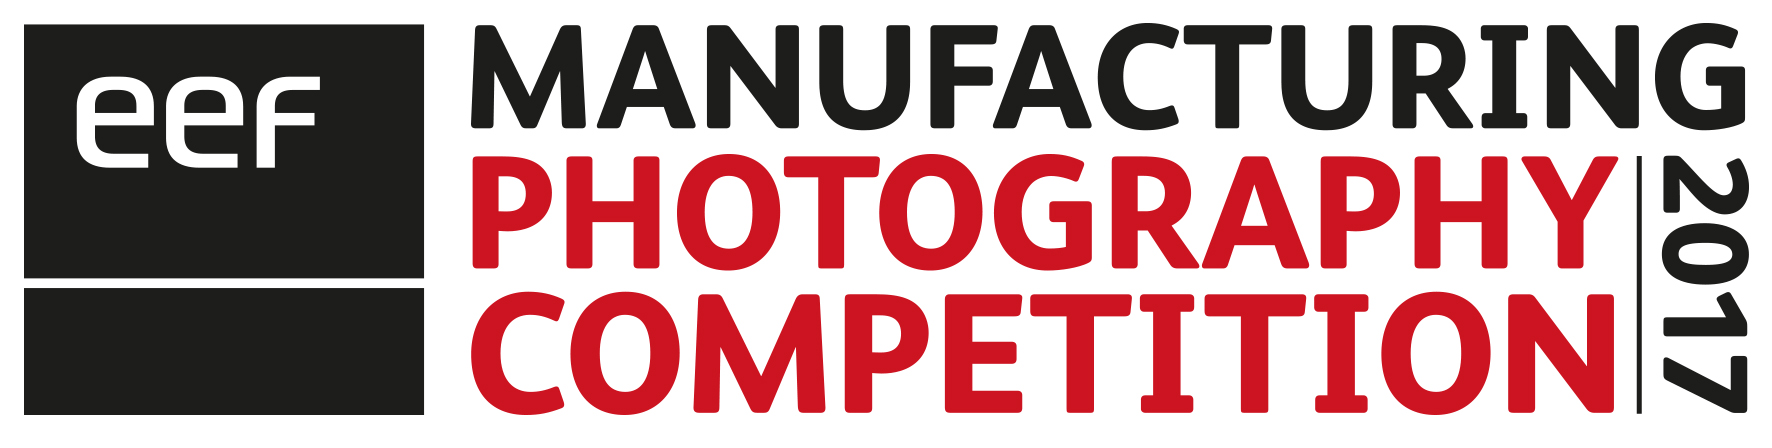 EEF Photography Competition 2017 – Free Entry & £5k Prize fund